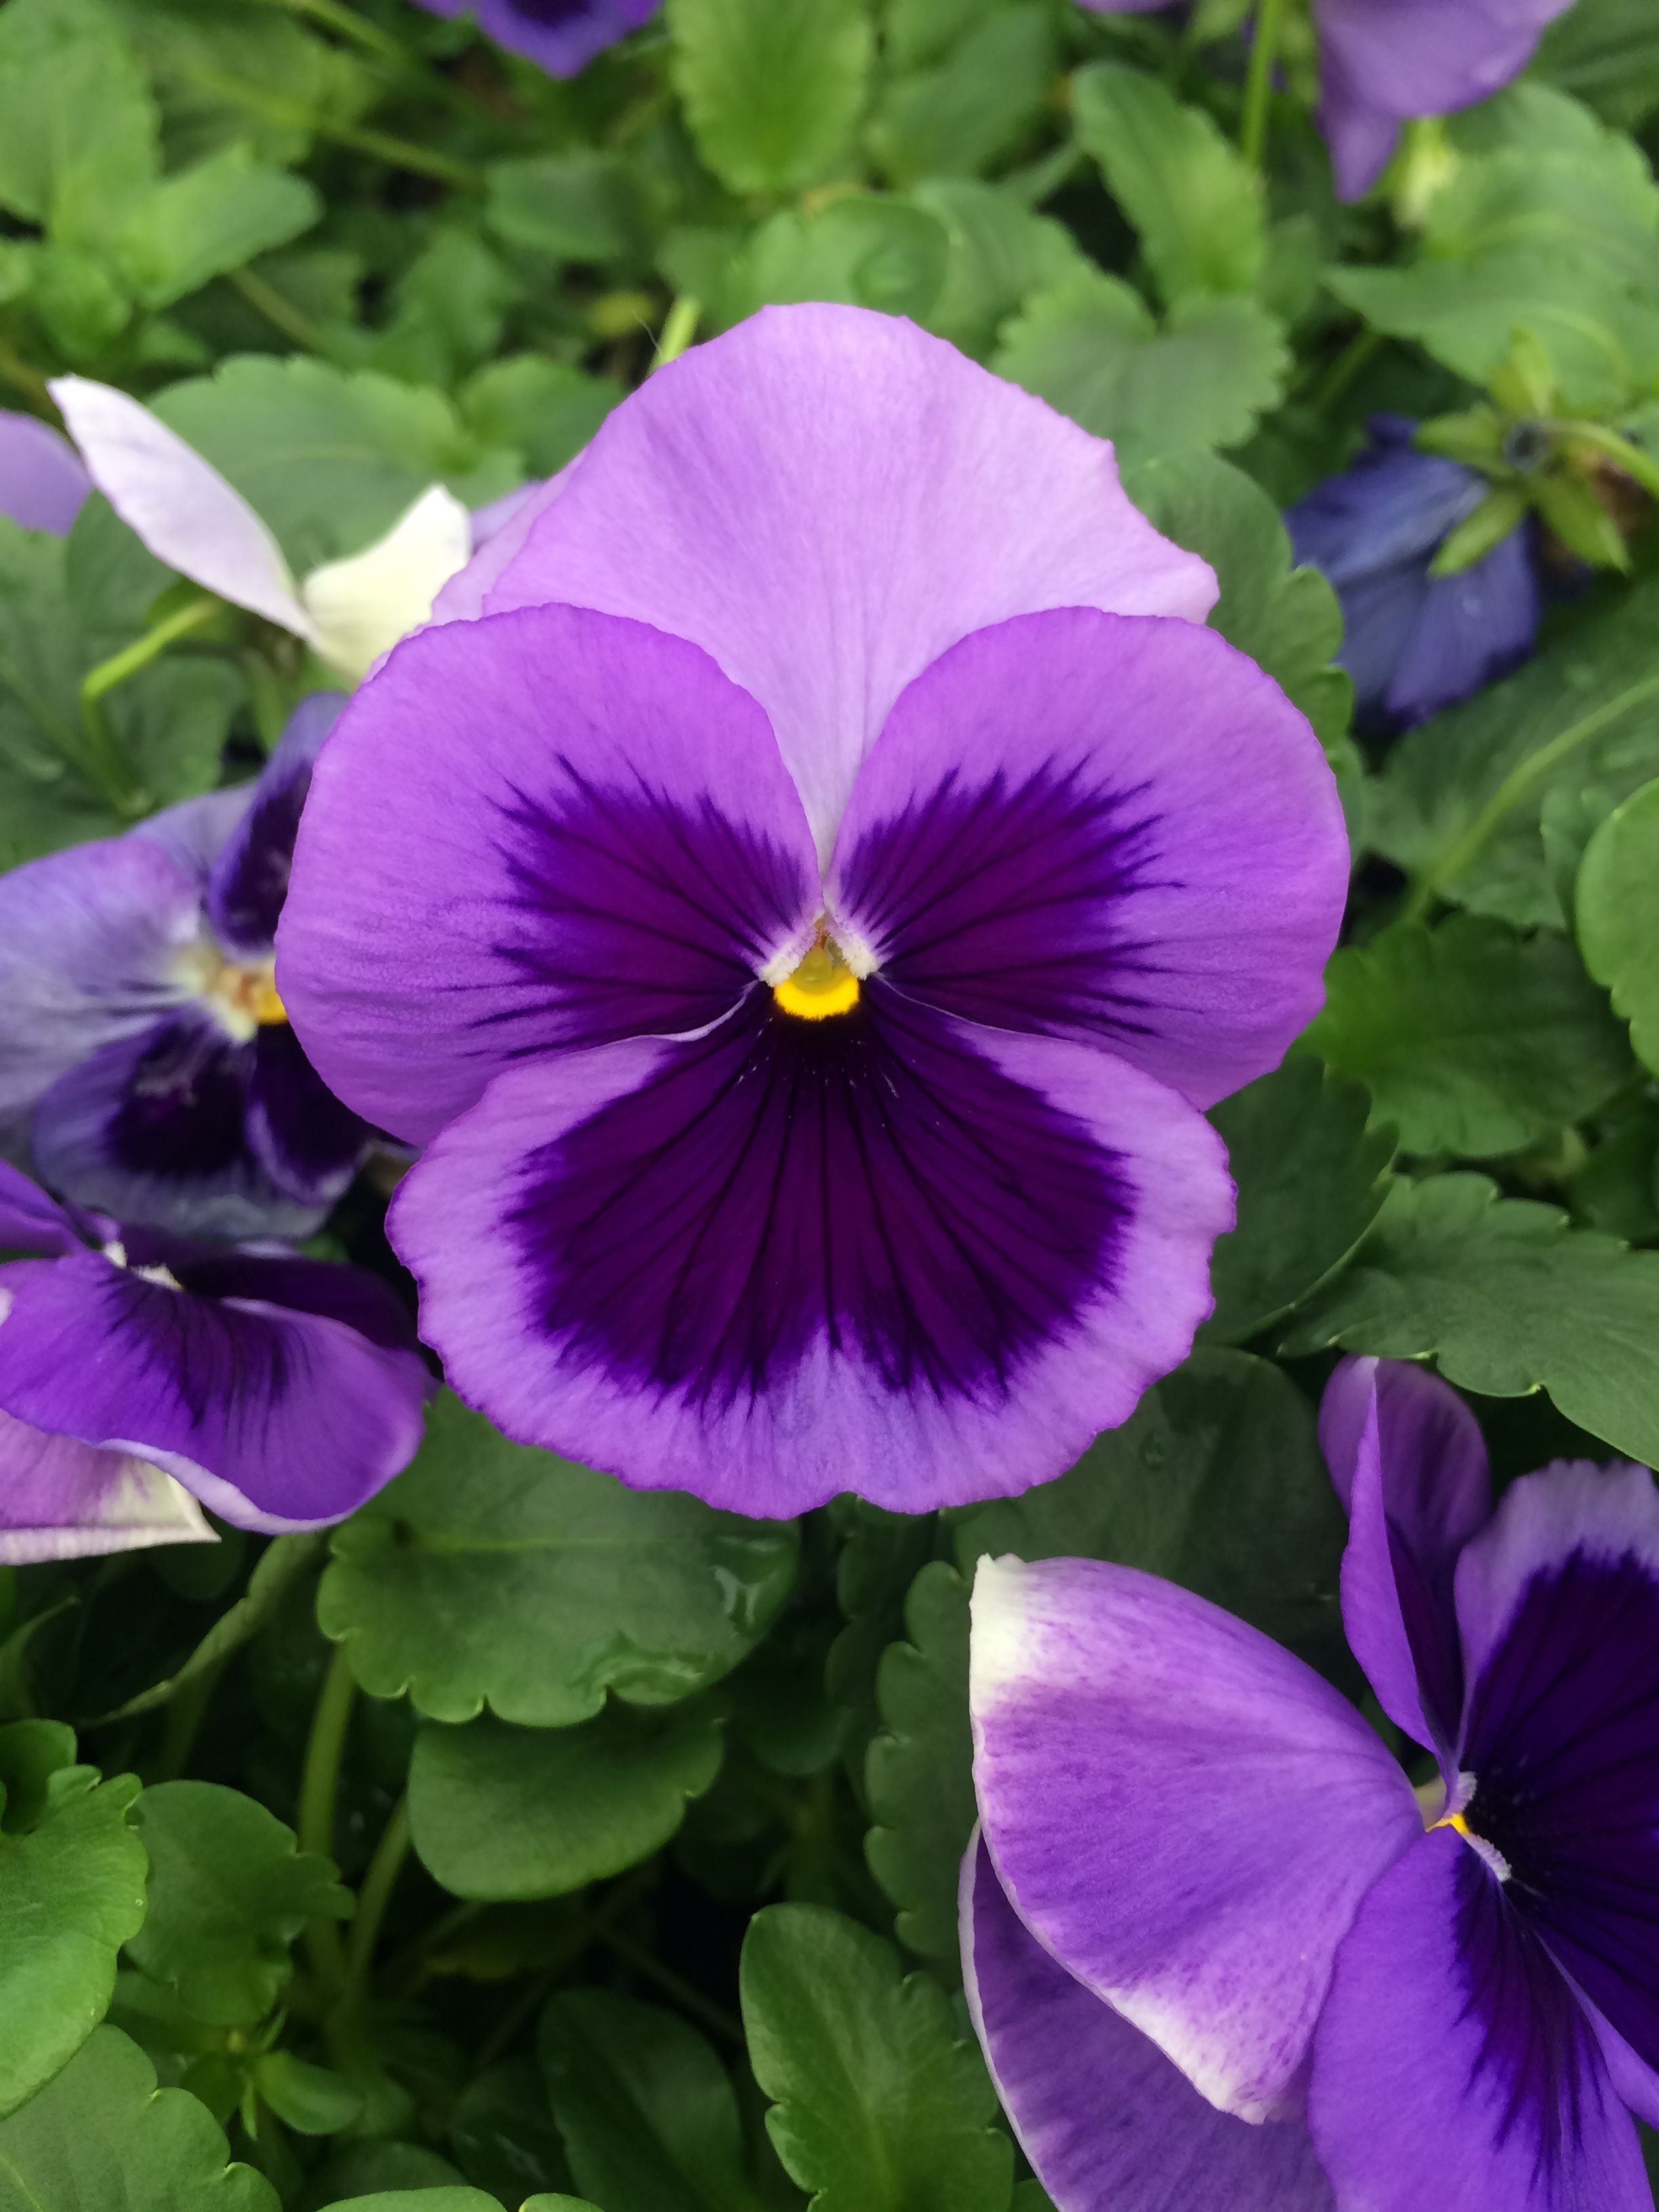 Pansy Flower Purple Pansies Flowers Growing Flowers Flowers